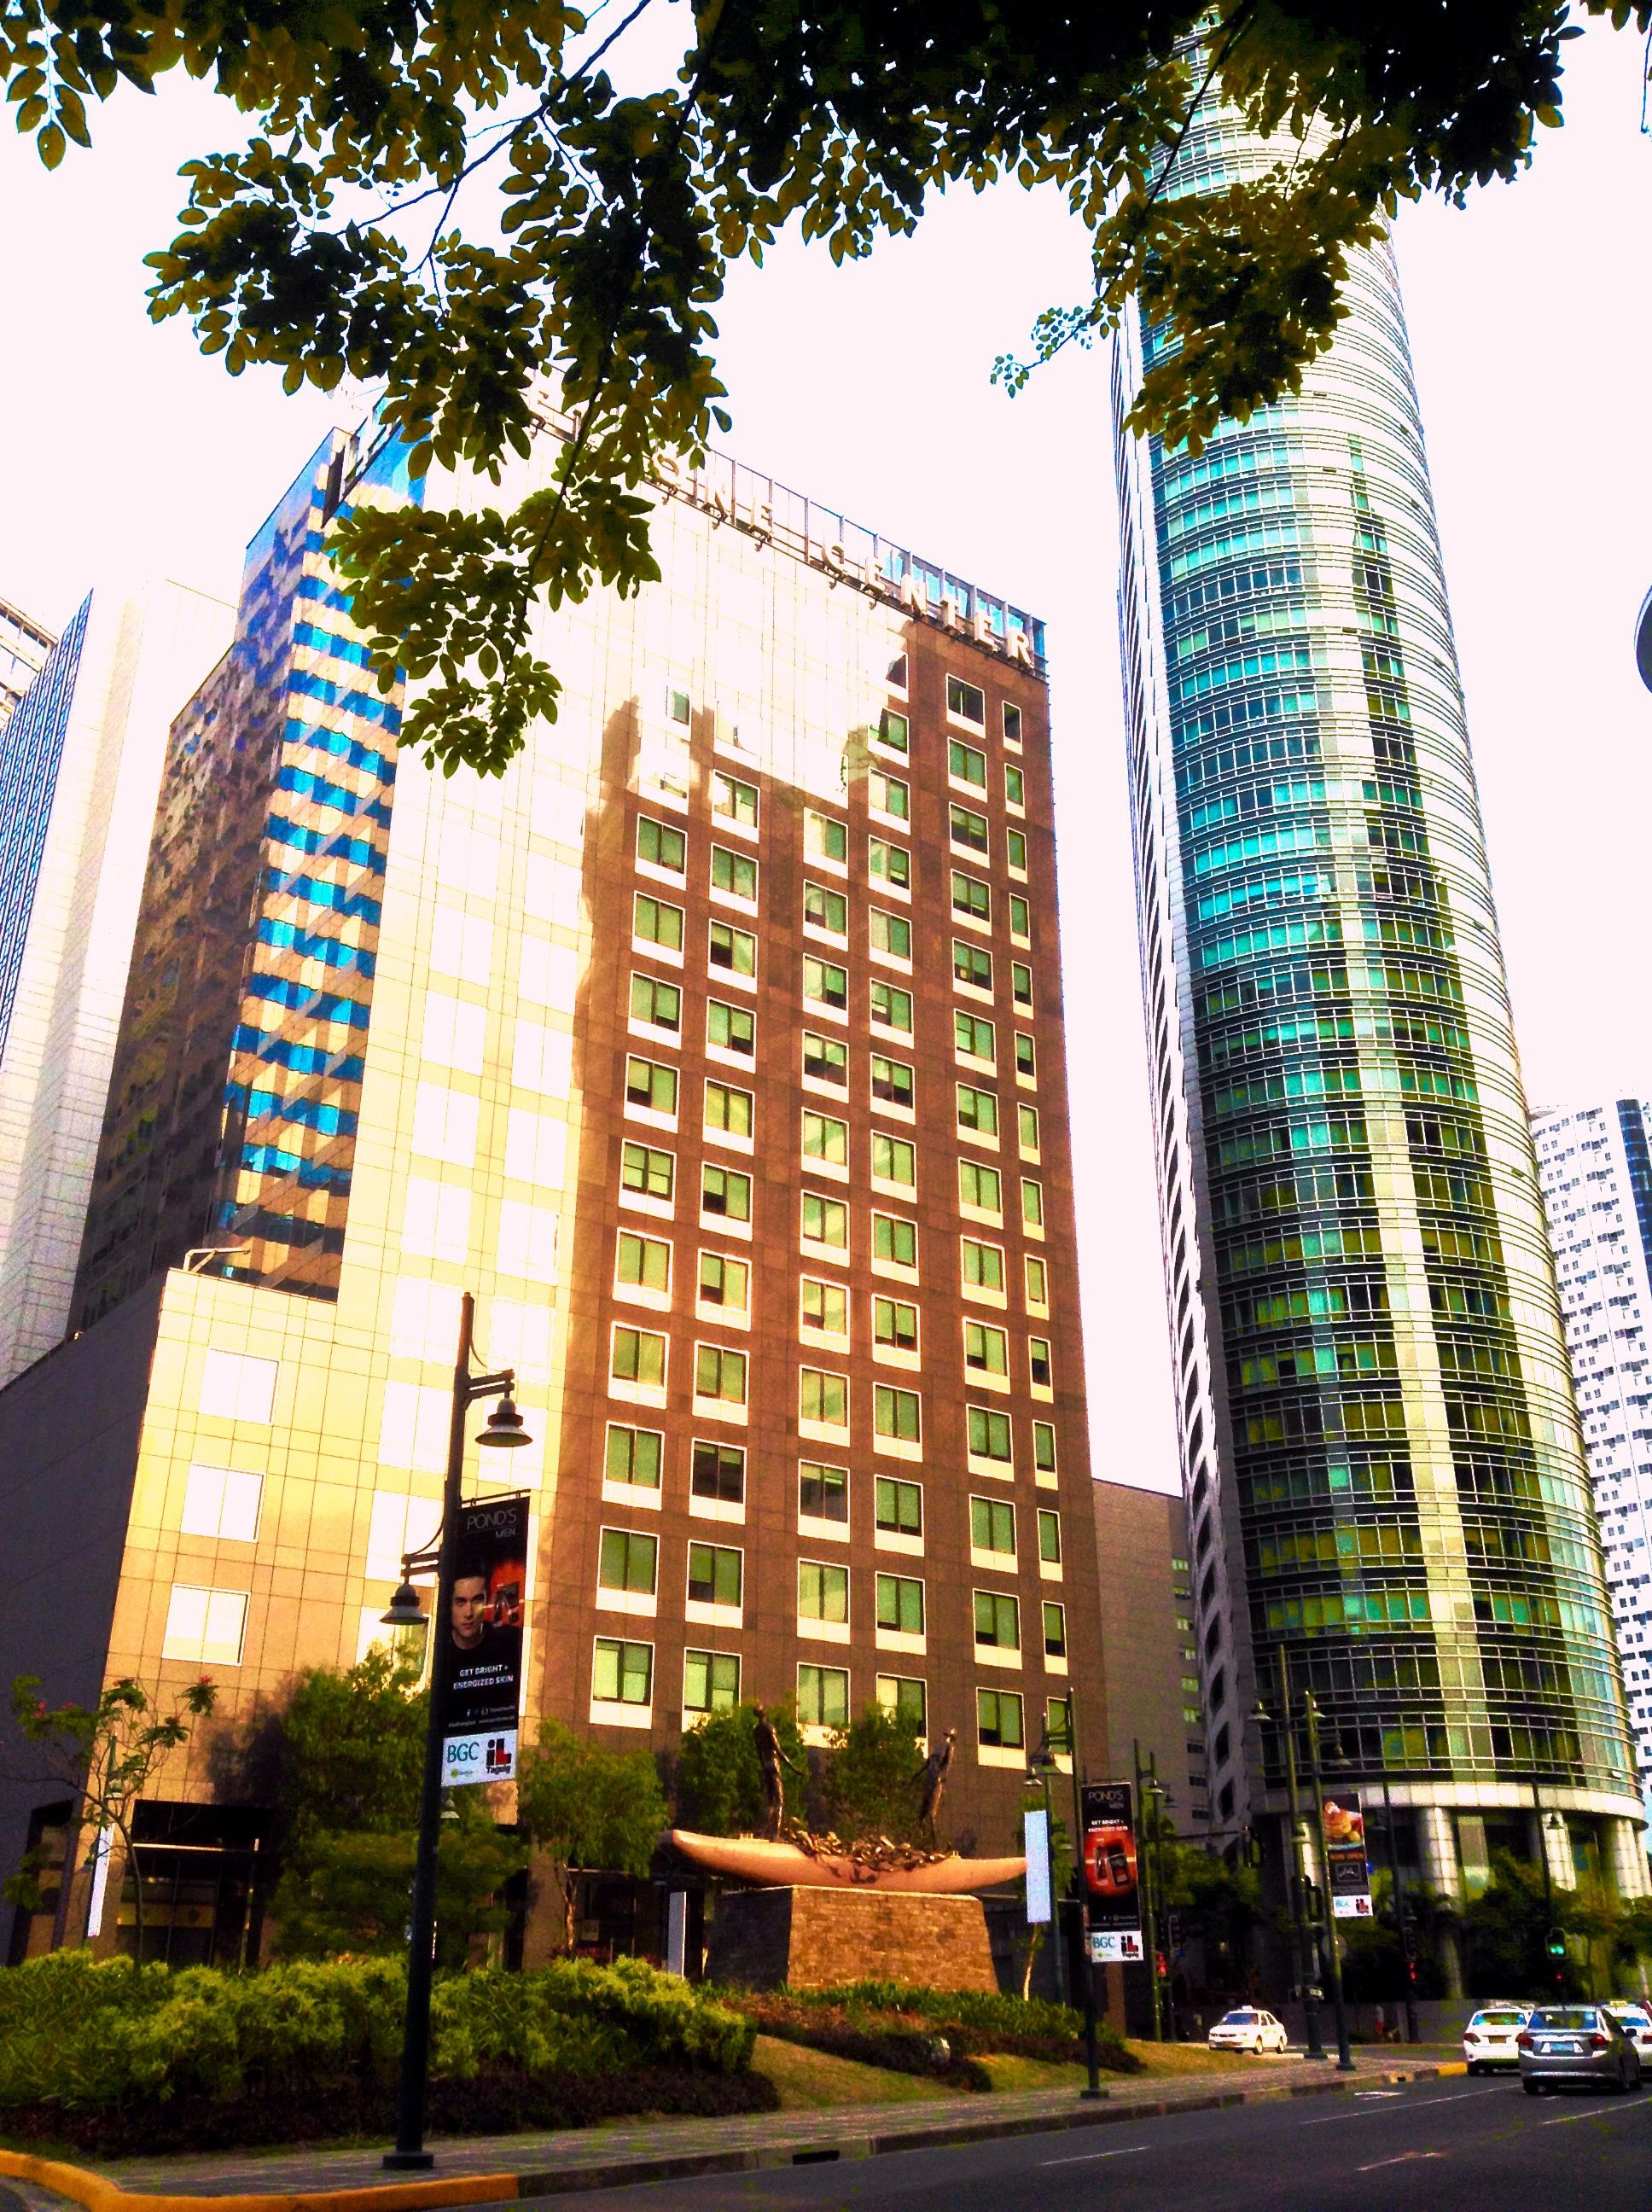 Net One Building | Fort Bonifacio Global City | www.vigorretravelerlease.com